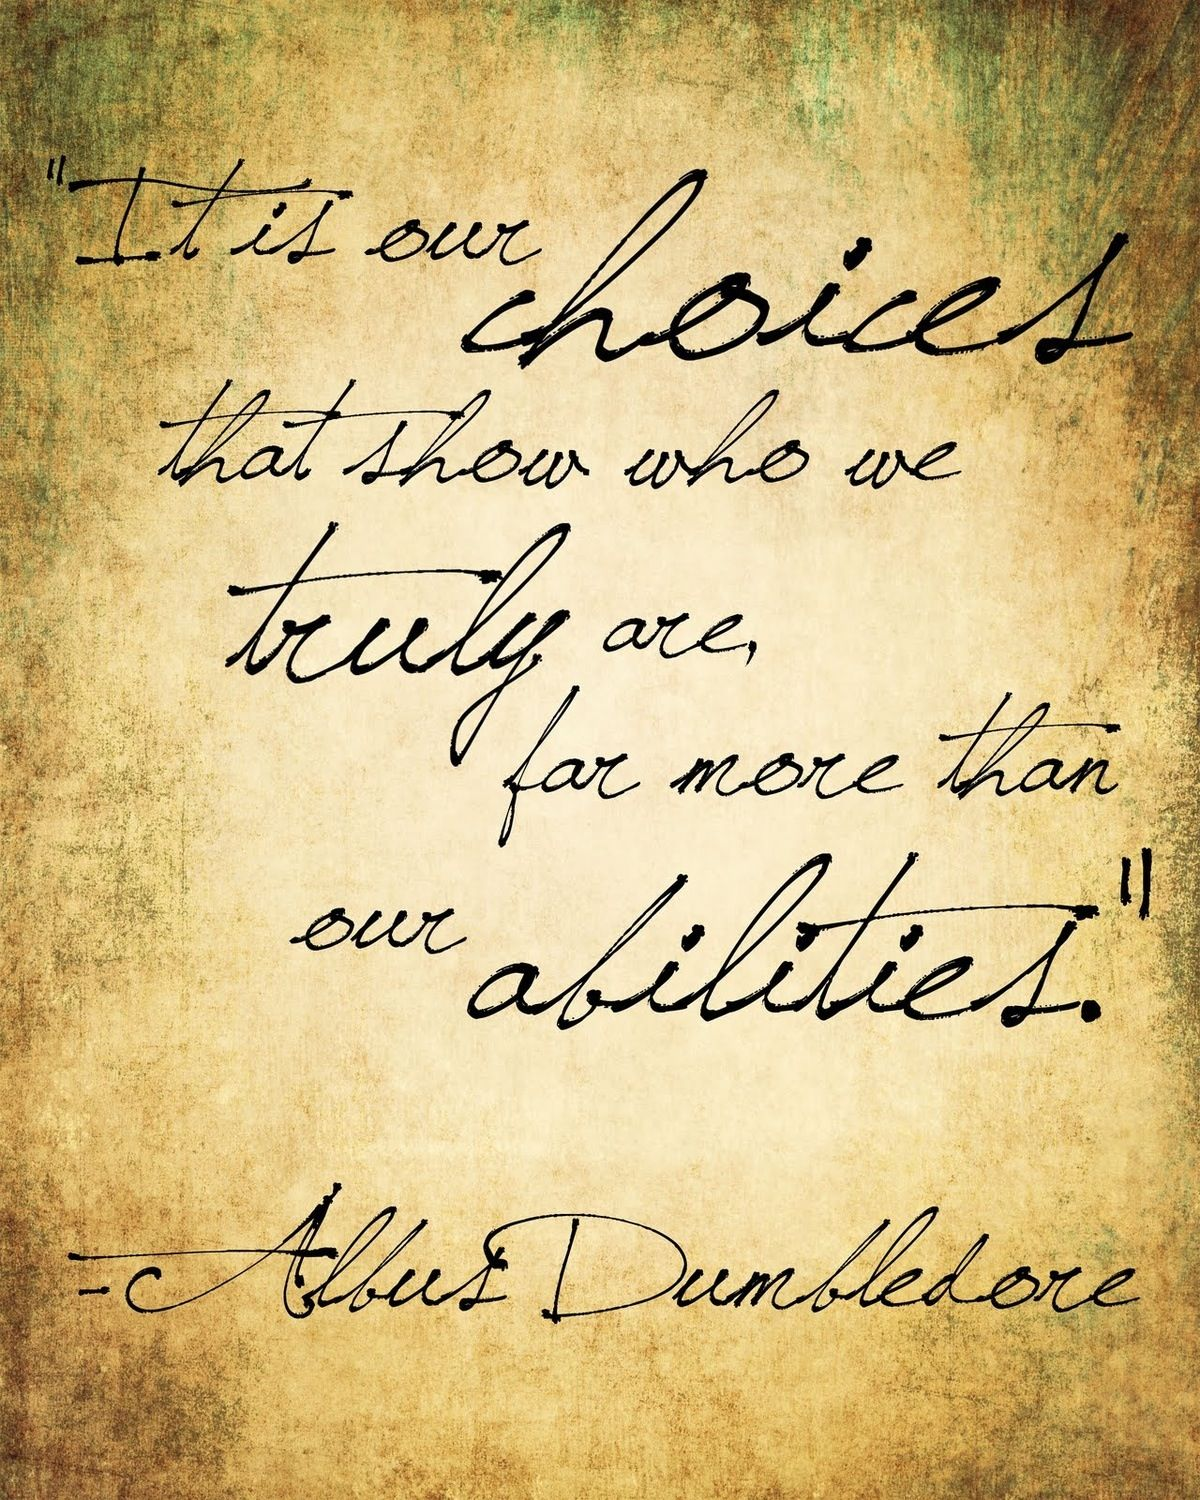 Albus Dumbledore Quote from Harry Potter | Favorite Quotes ...